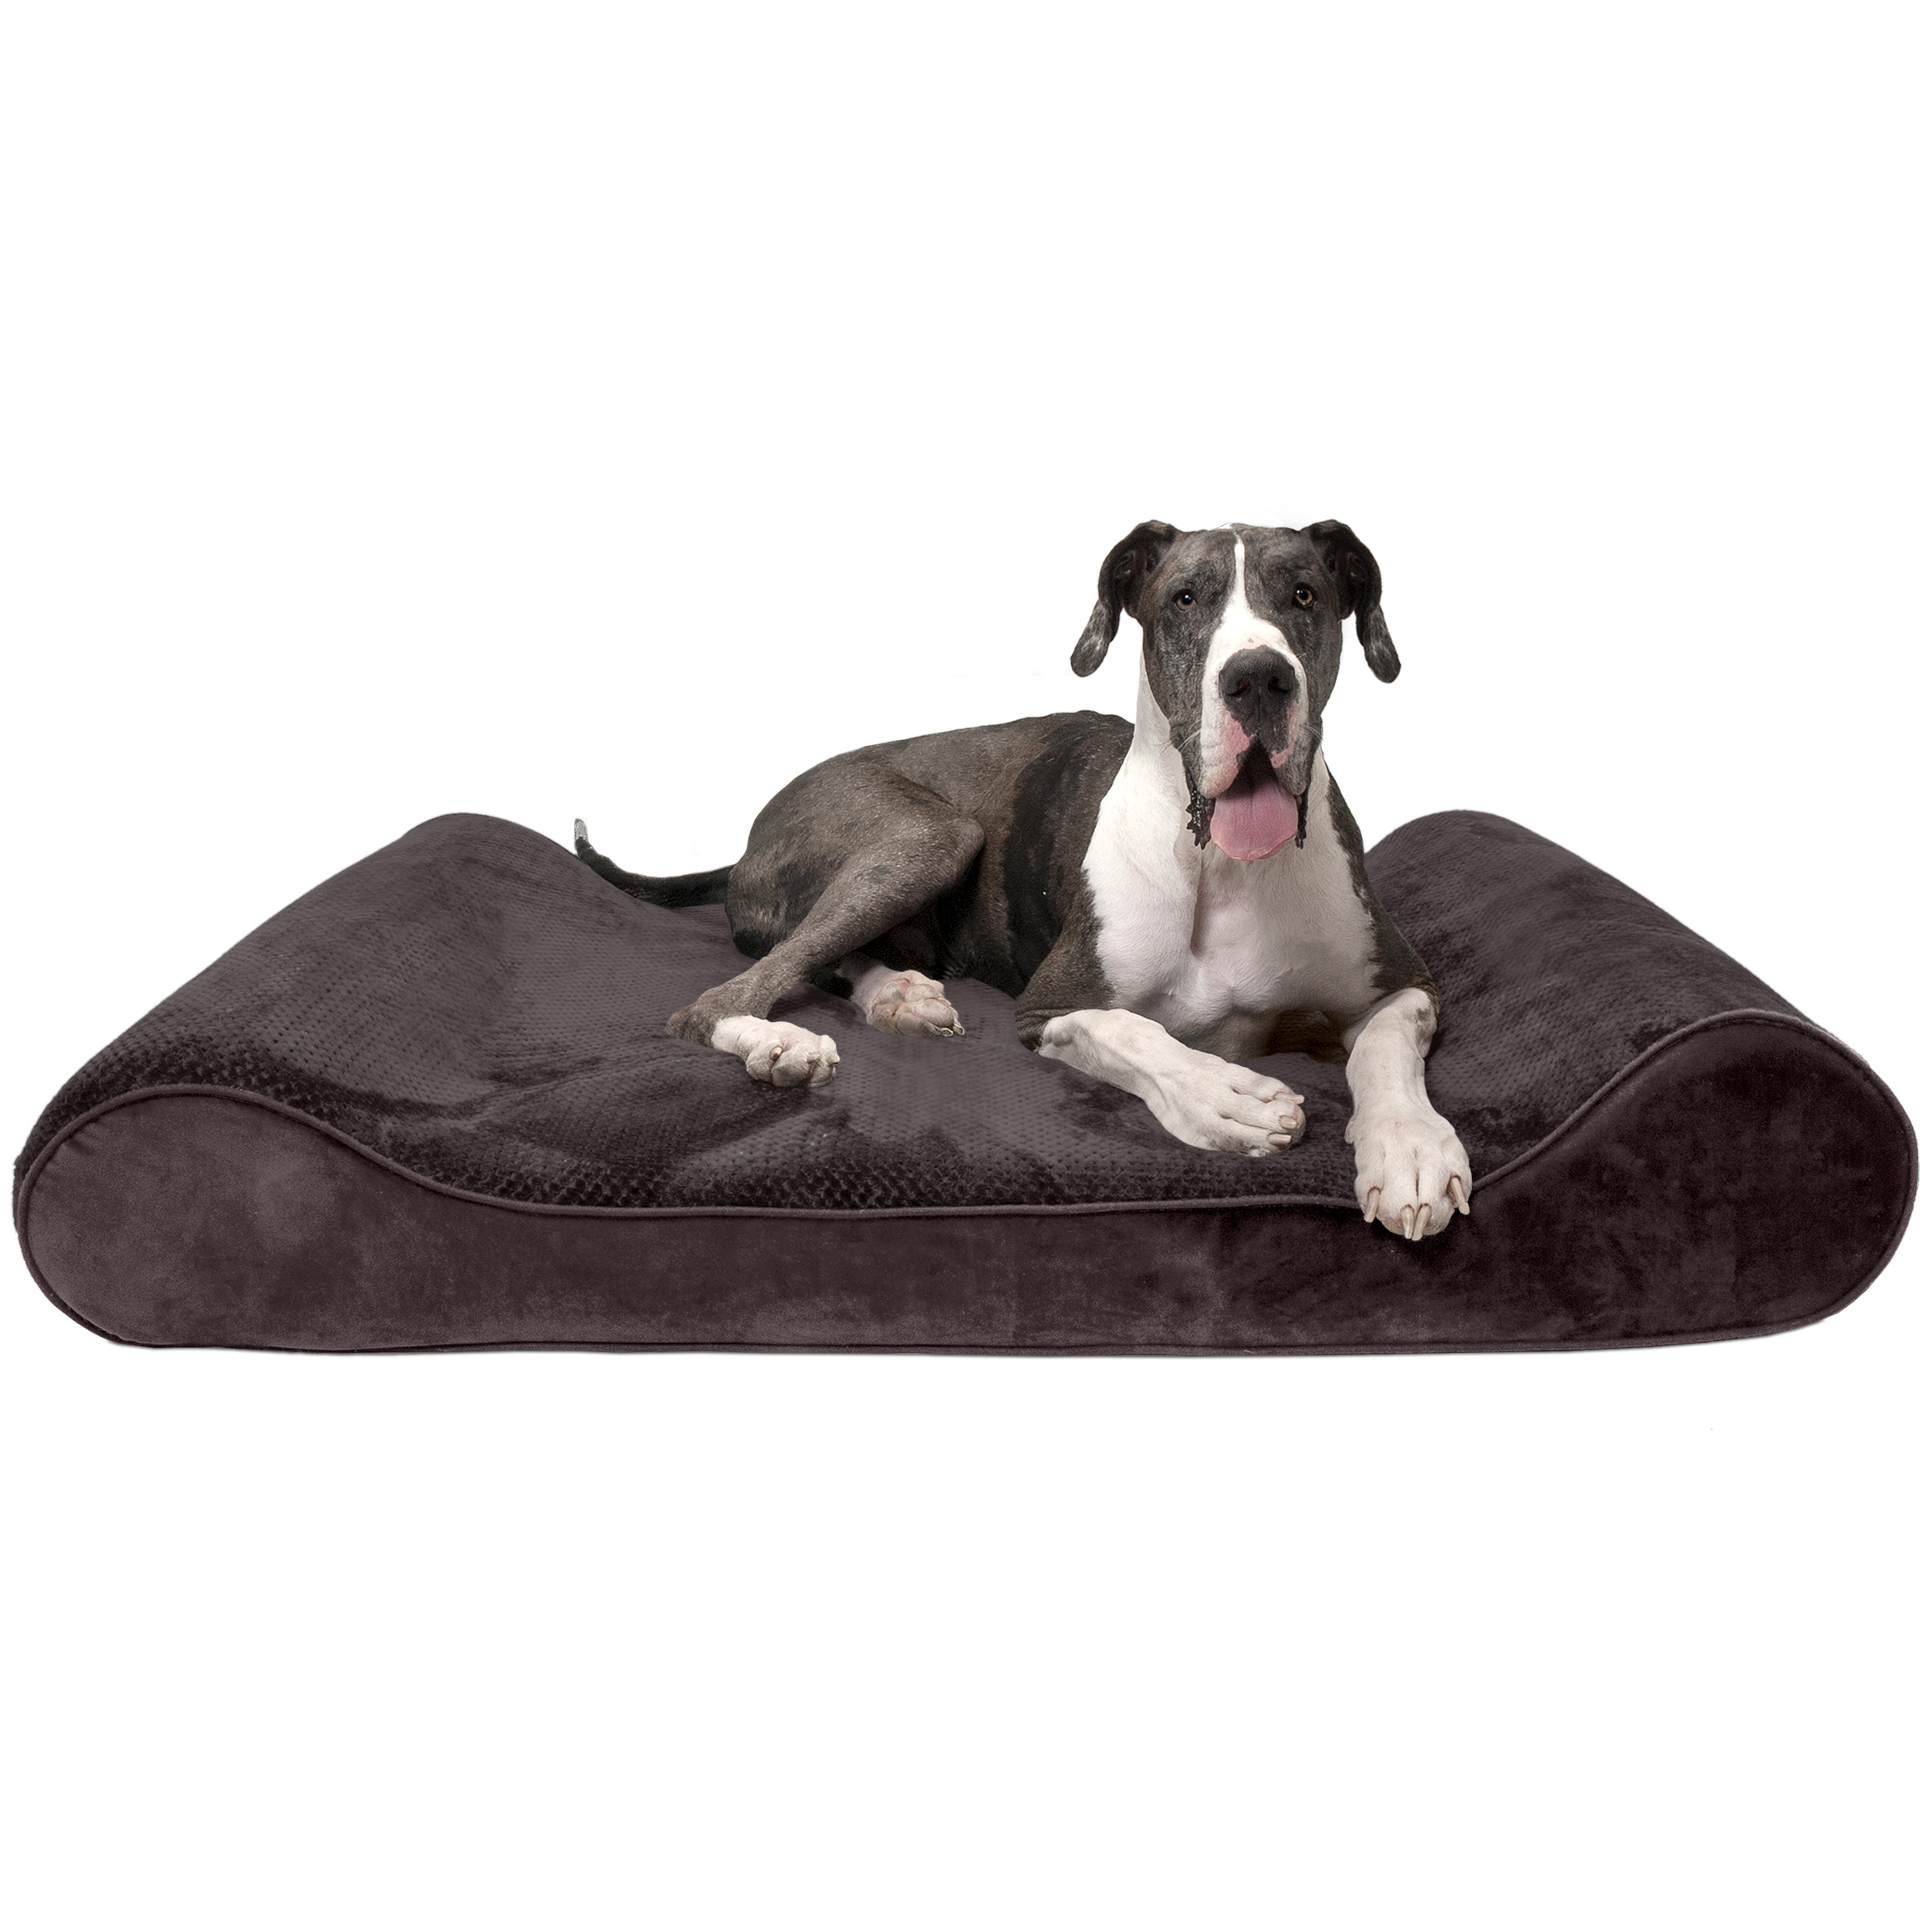 FurHaven Pet Dog Bed | Orthopedic Minky Plush & Velvet Luxe Lounger Pet Bed for Dogs & Cats, Espresso, Giant